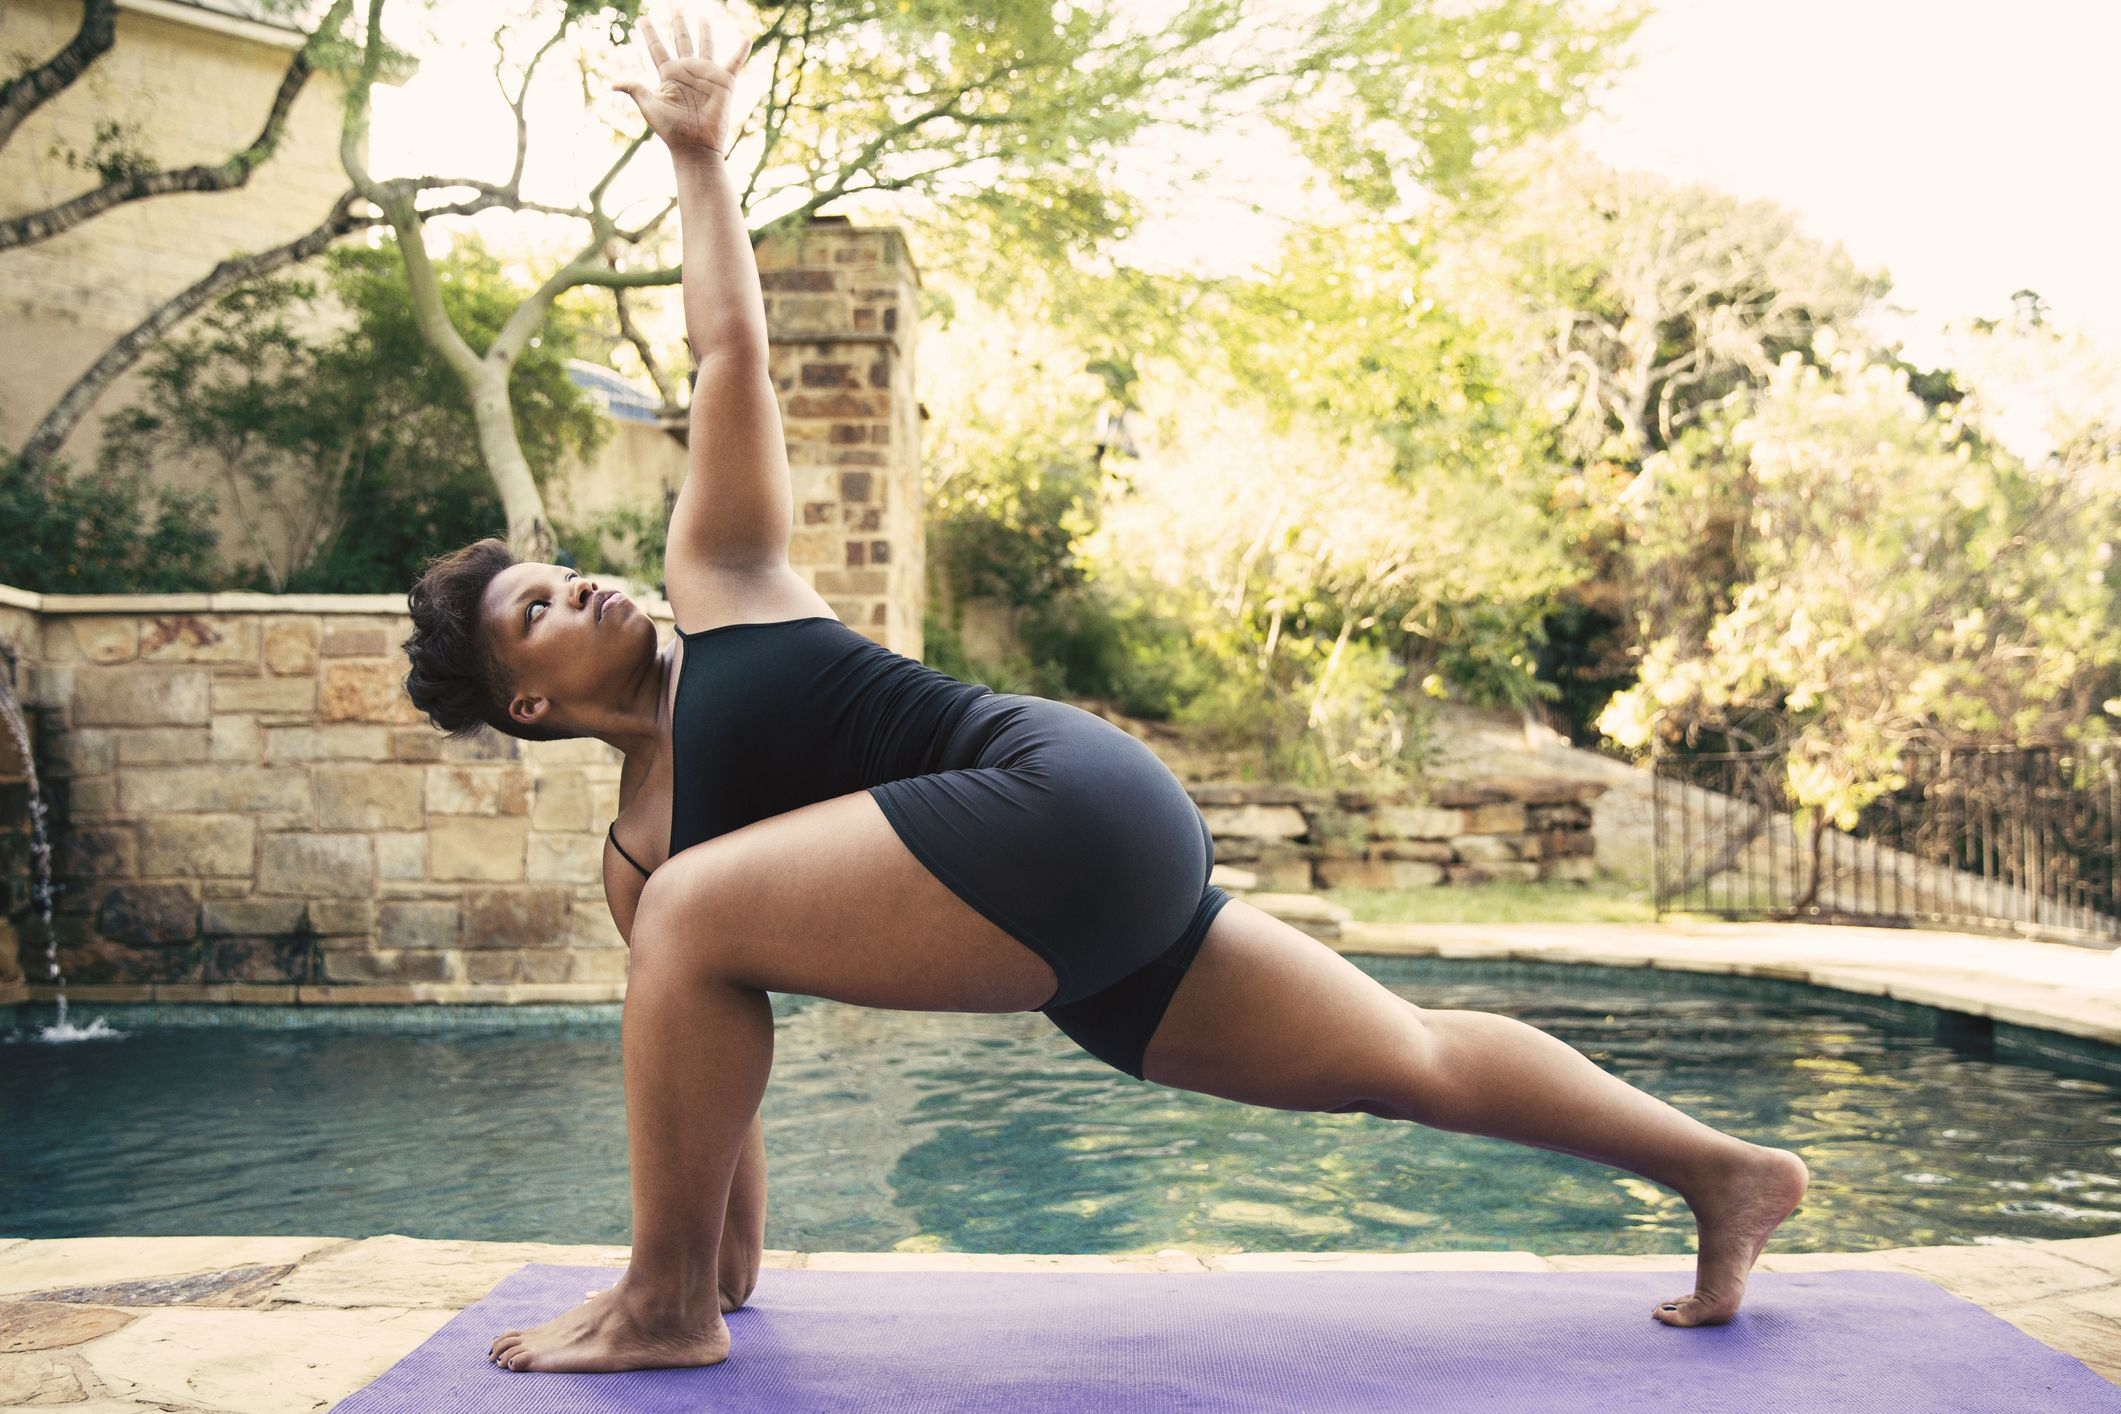 Can You Really Lose Weight With Yoga? We Find Out